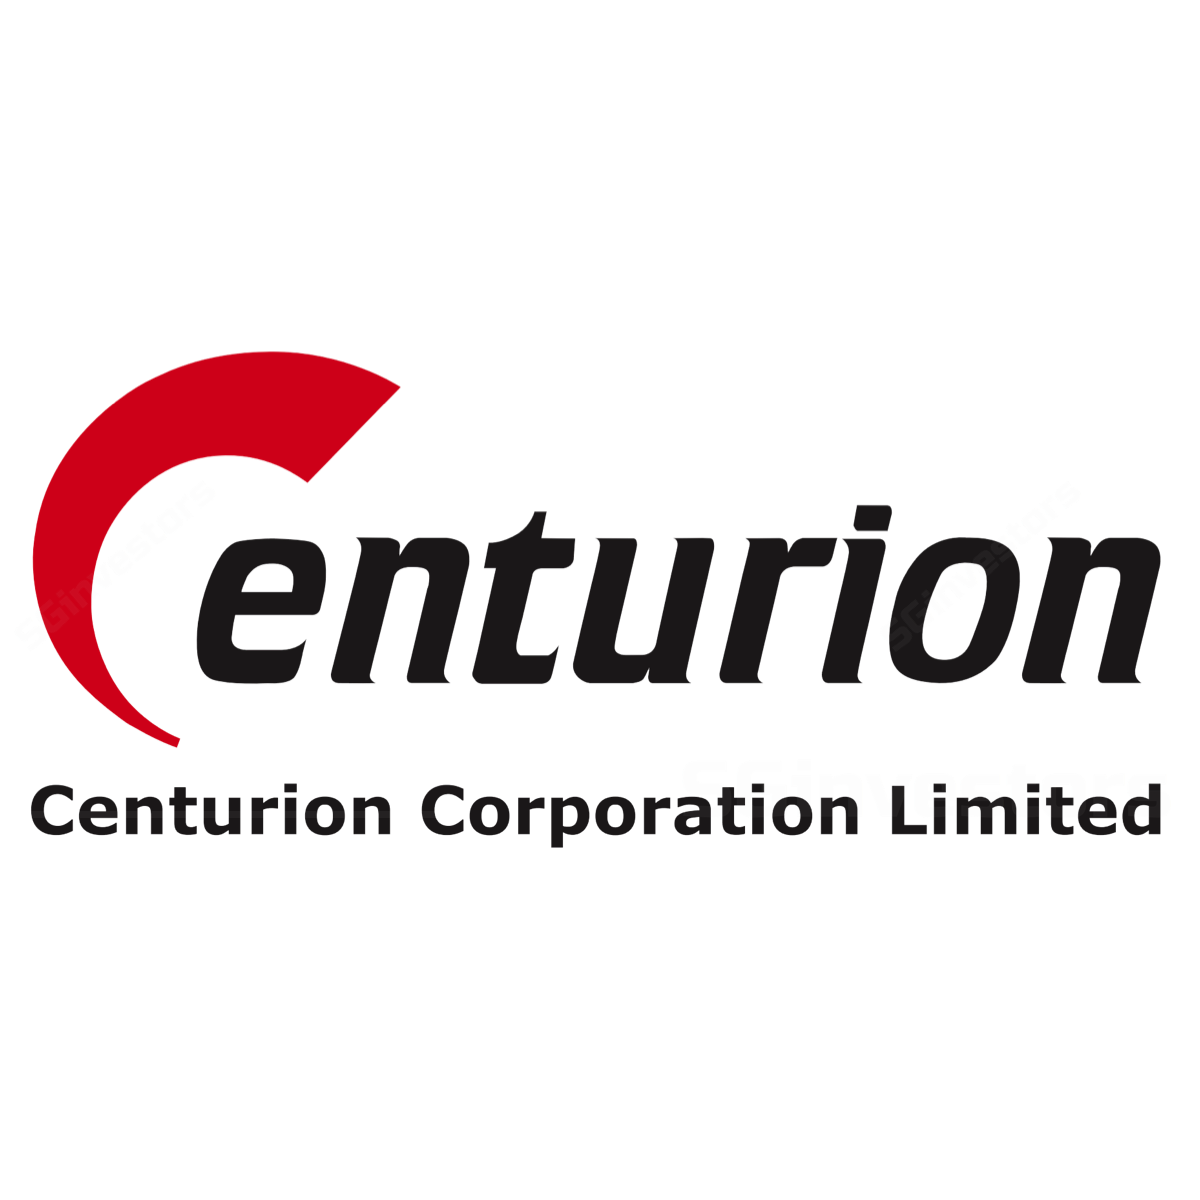 Centurion Corporation Limited - Phillip Securities 2017-05-19: Strong Performance Despite A Tough Operating Environment